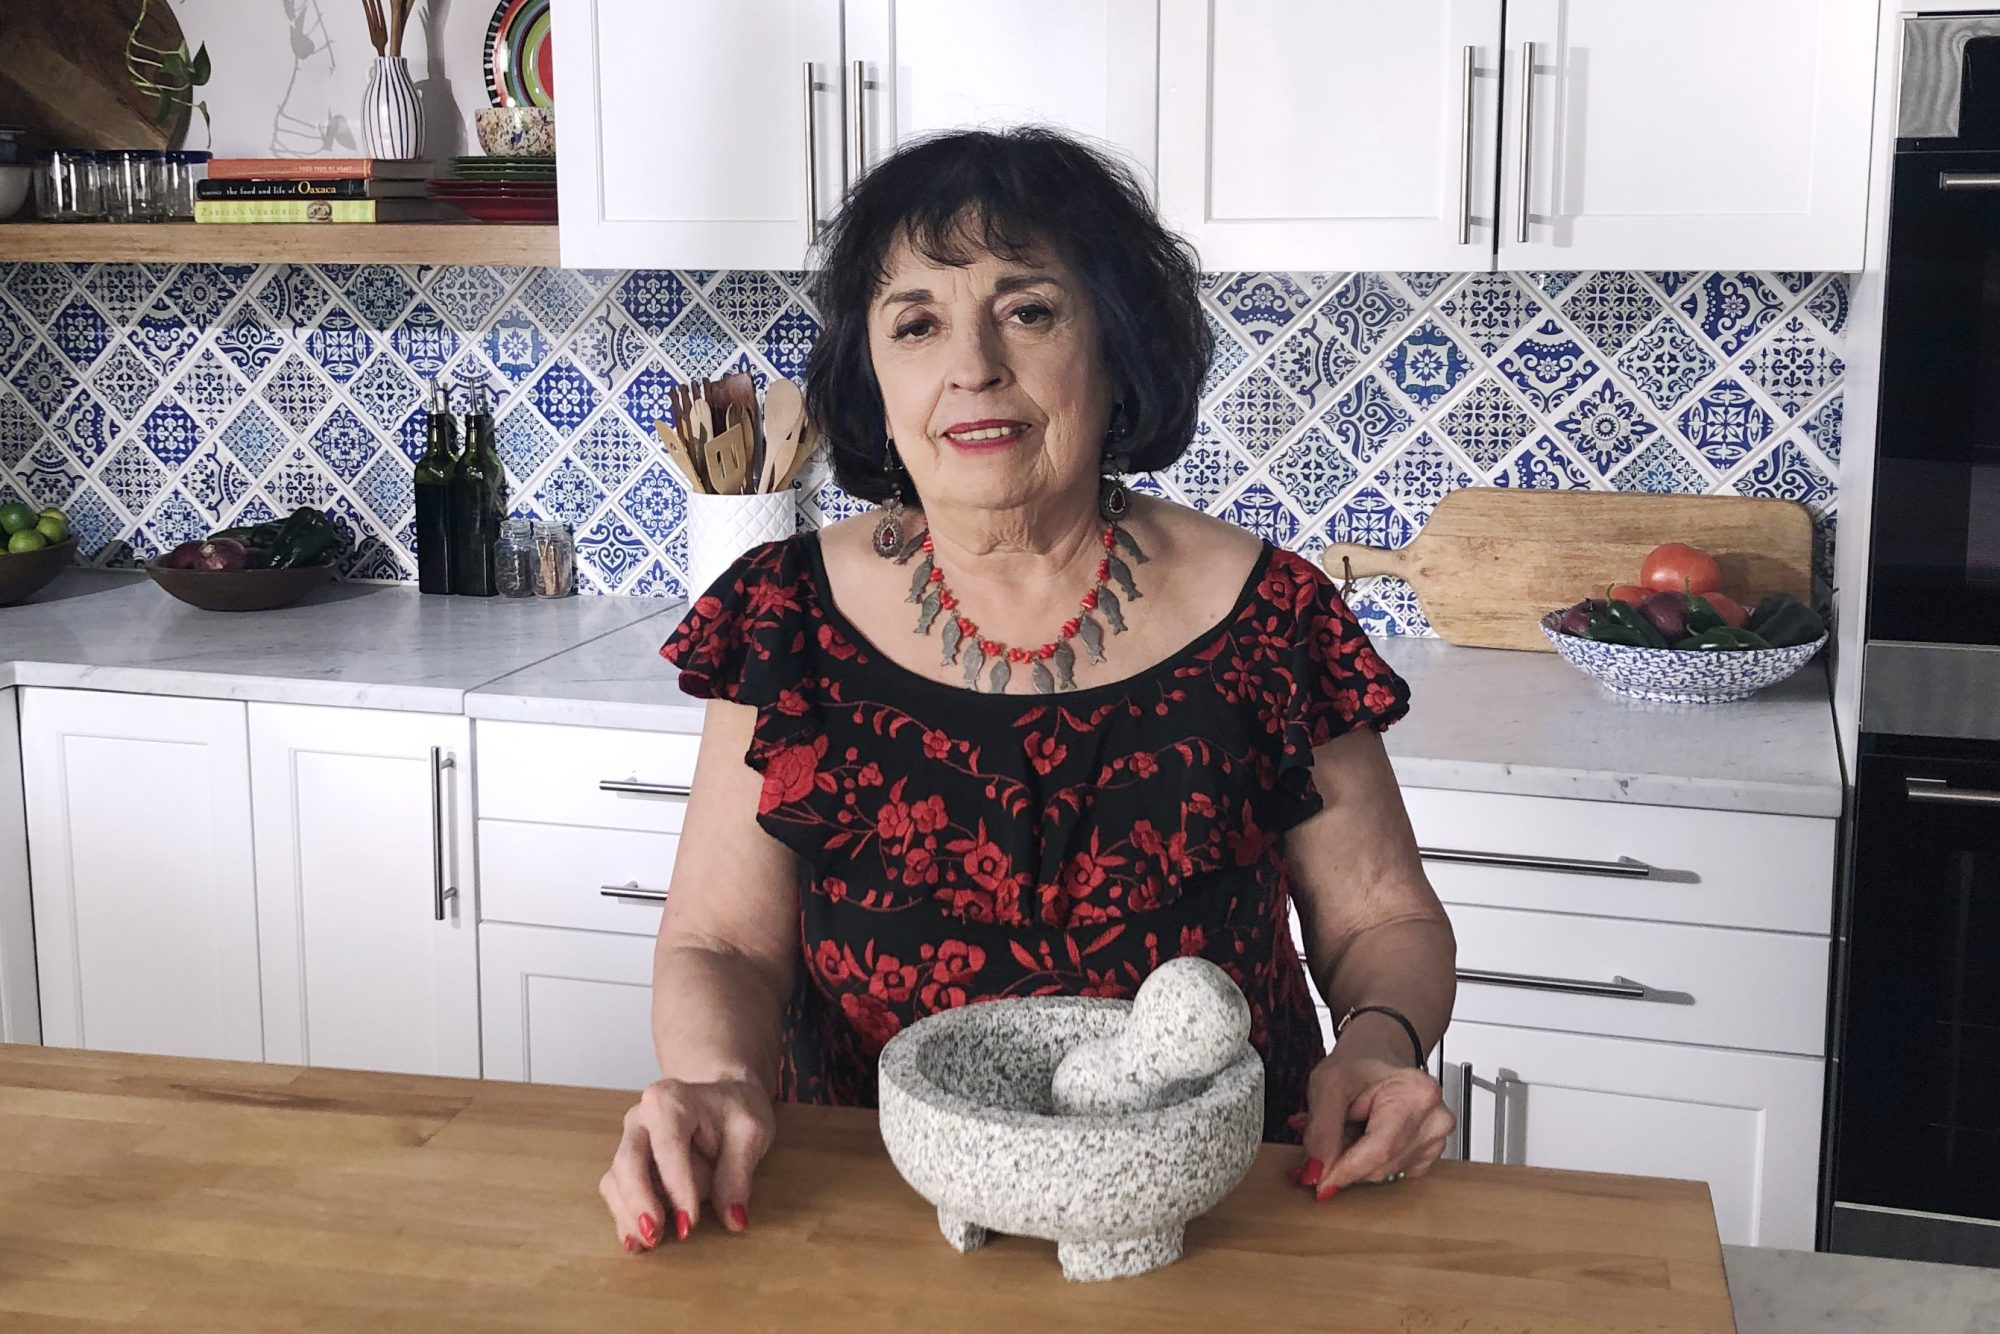 Zarela Martinez in the kitchen with mortar and pestle on the island